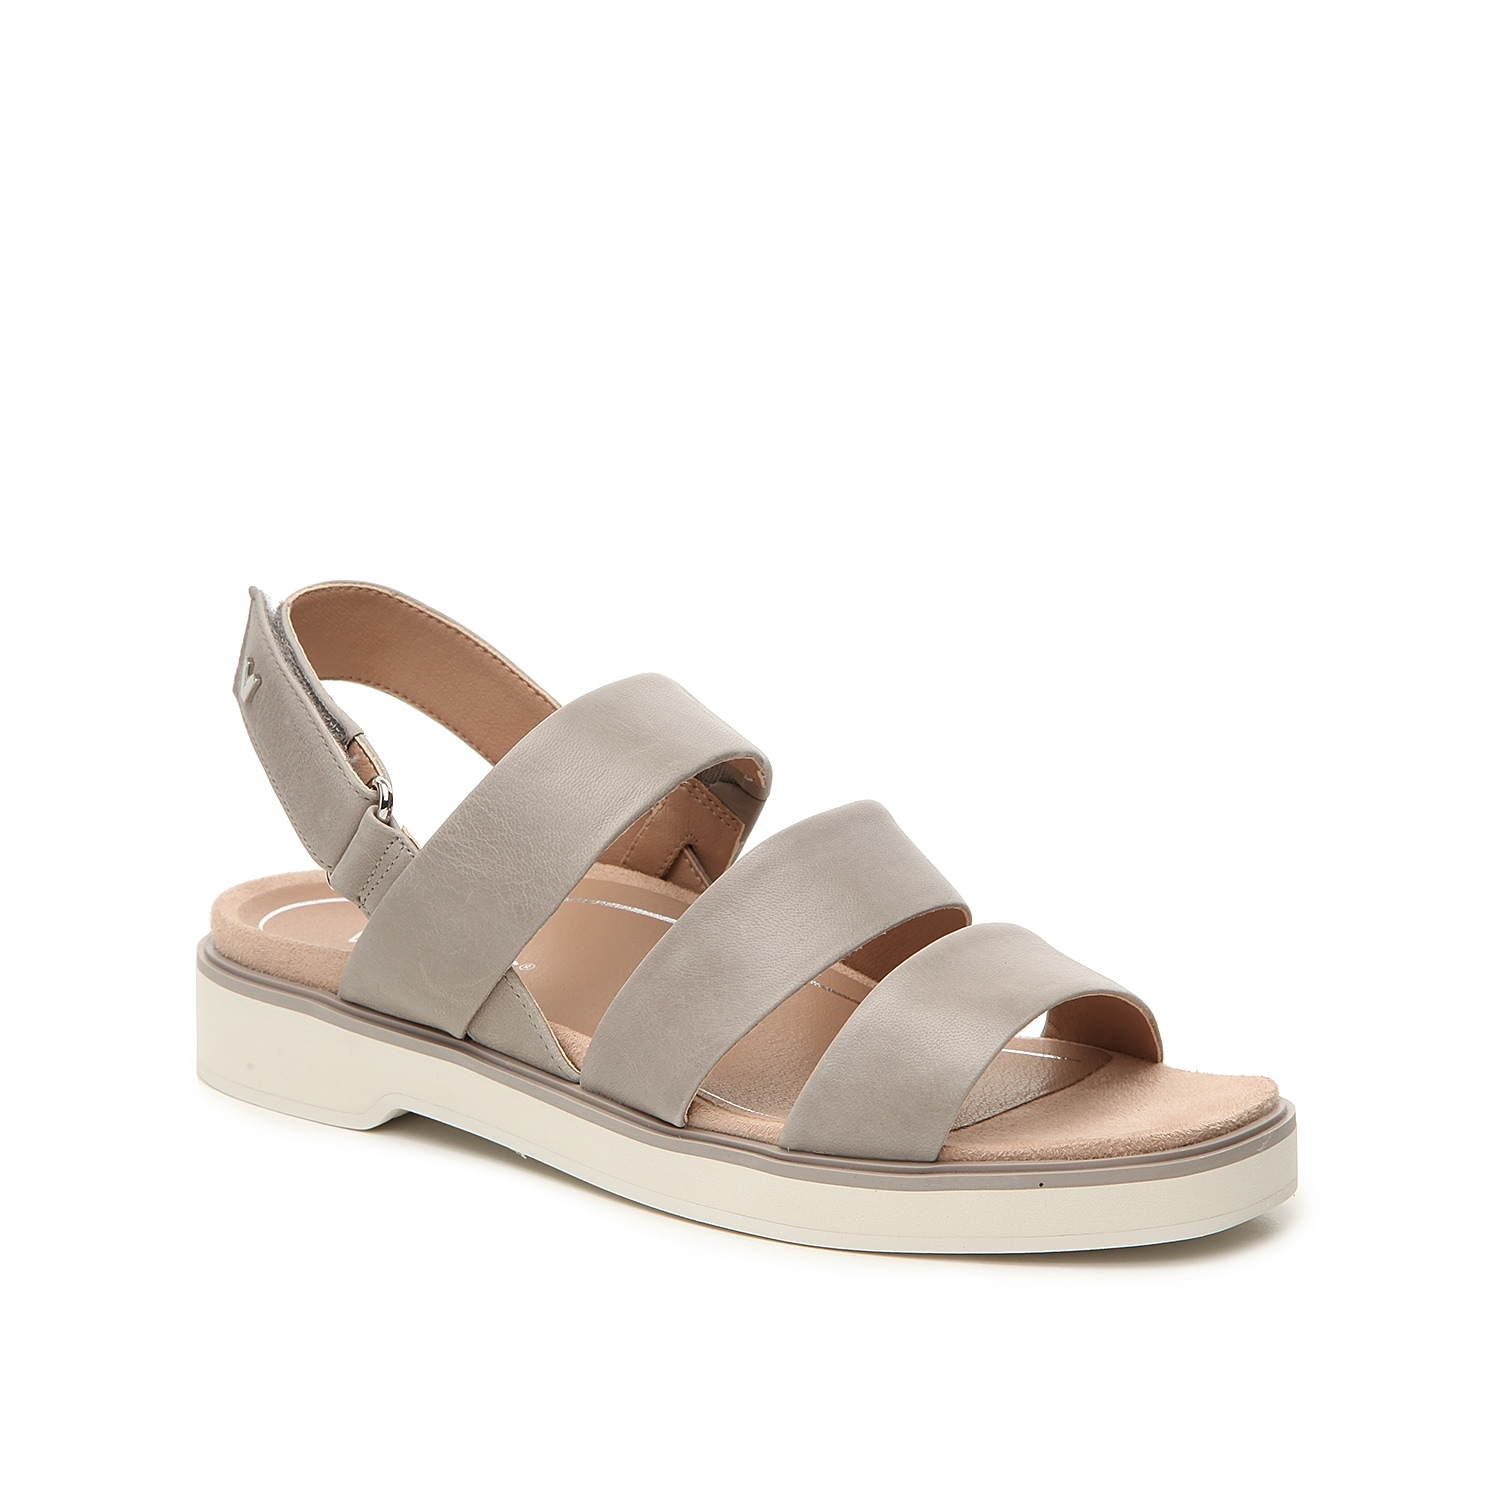 Tackle outdoor walks and summer strolling in these comfort-first sandals from Vionic. The Keomi feature a podiatrist-approved design that supports natural alignment with a biomechanical footbed and arched elevation.